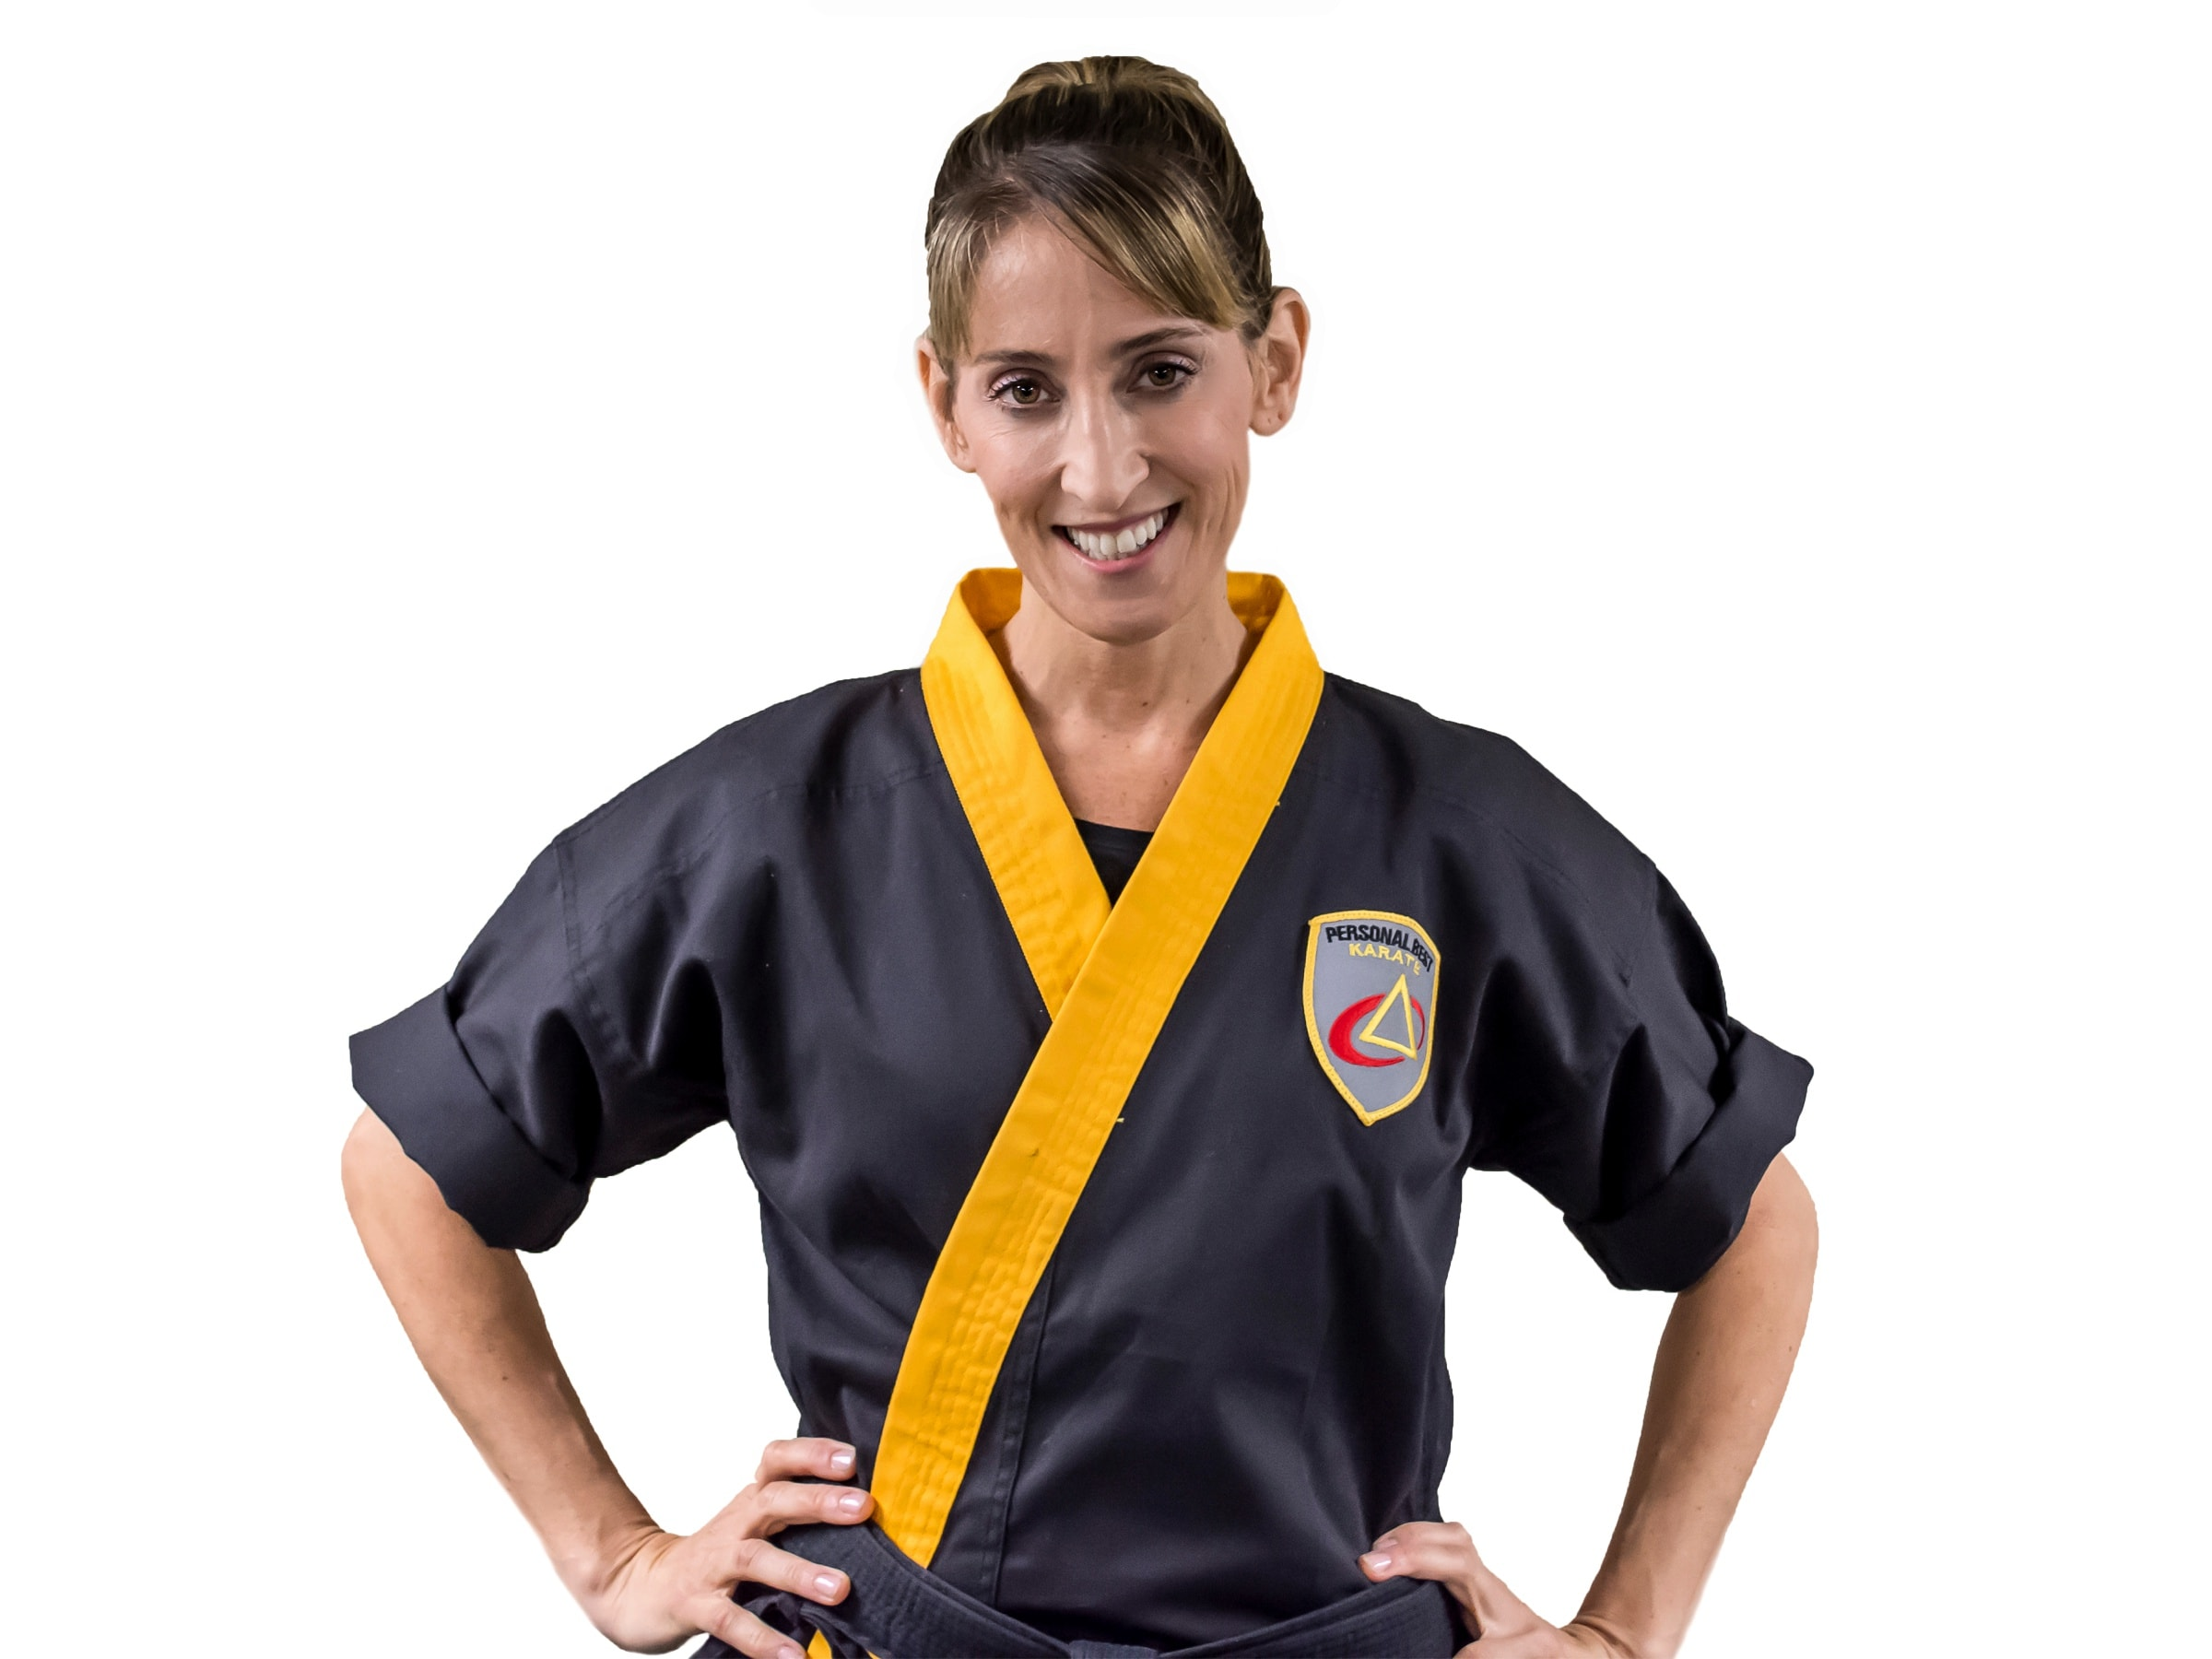 Kim Guccione in Norton - Personal Best Karate